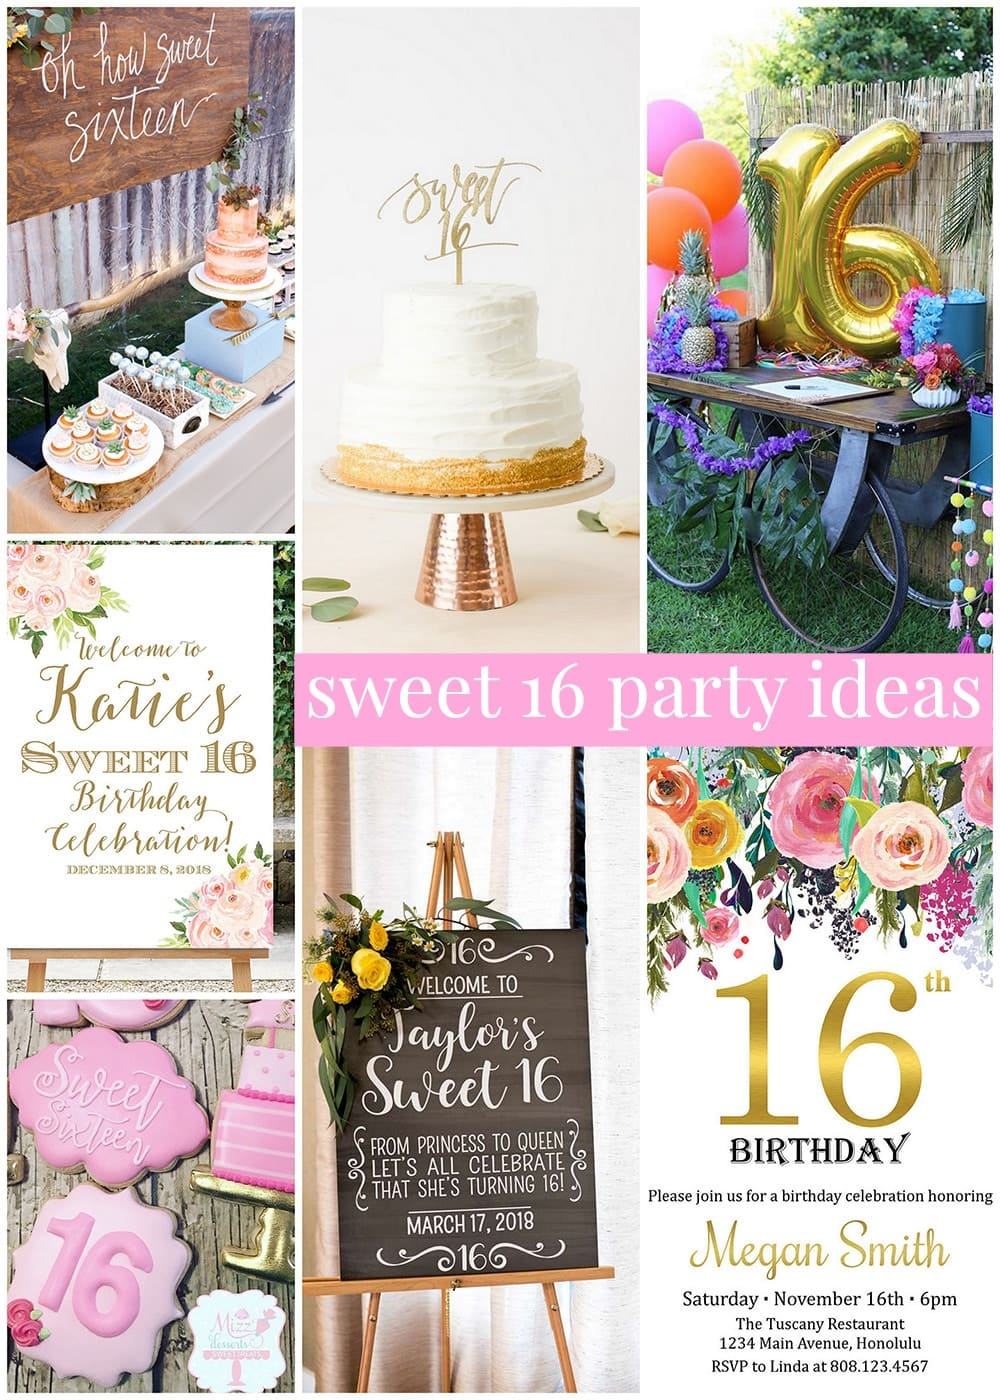 Sweet 16 Birthday Party Ideas Decorations Themes Lots More